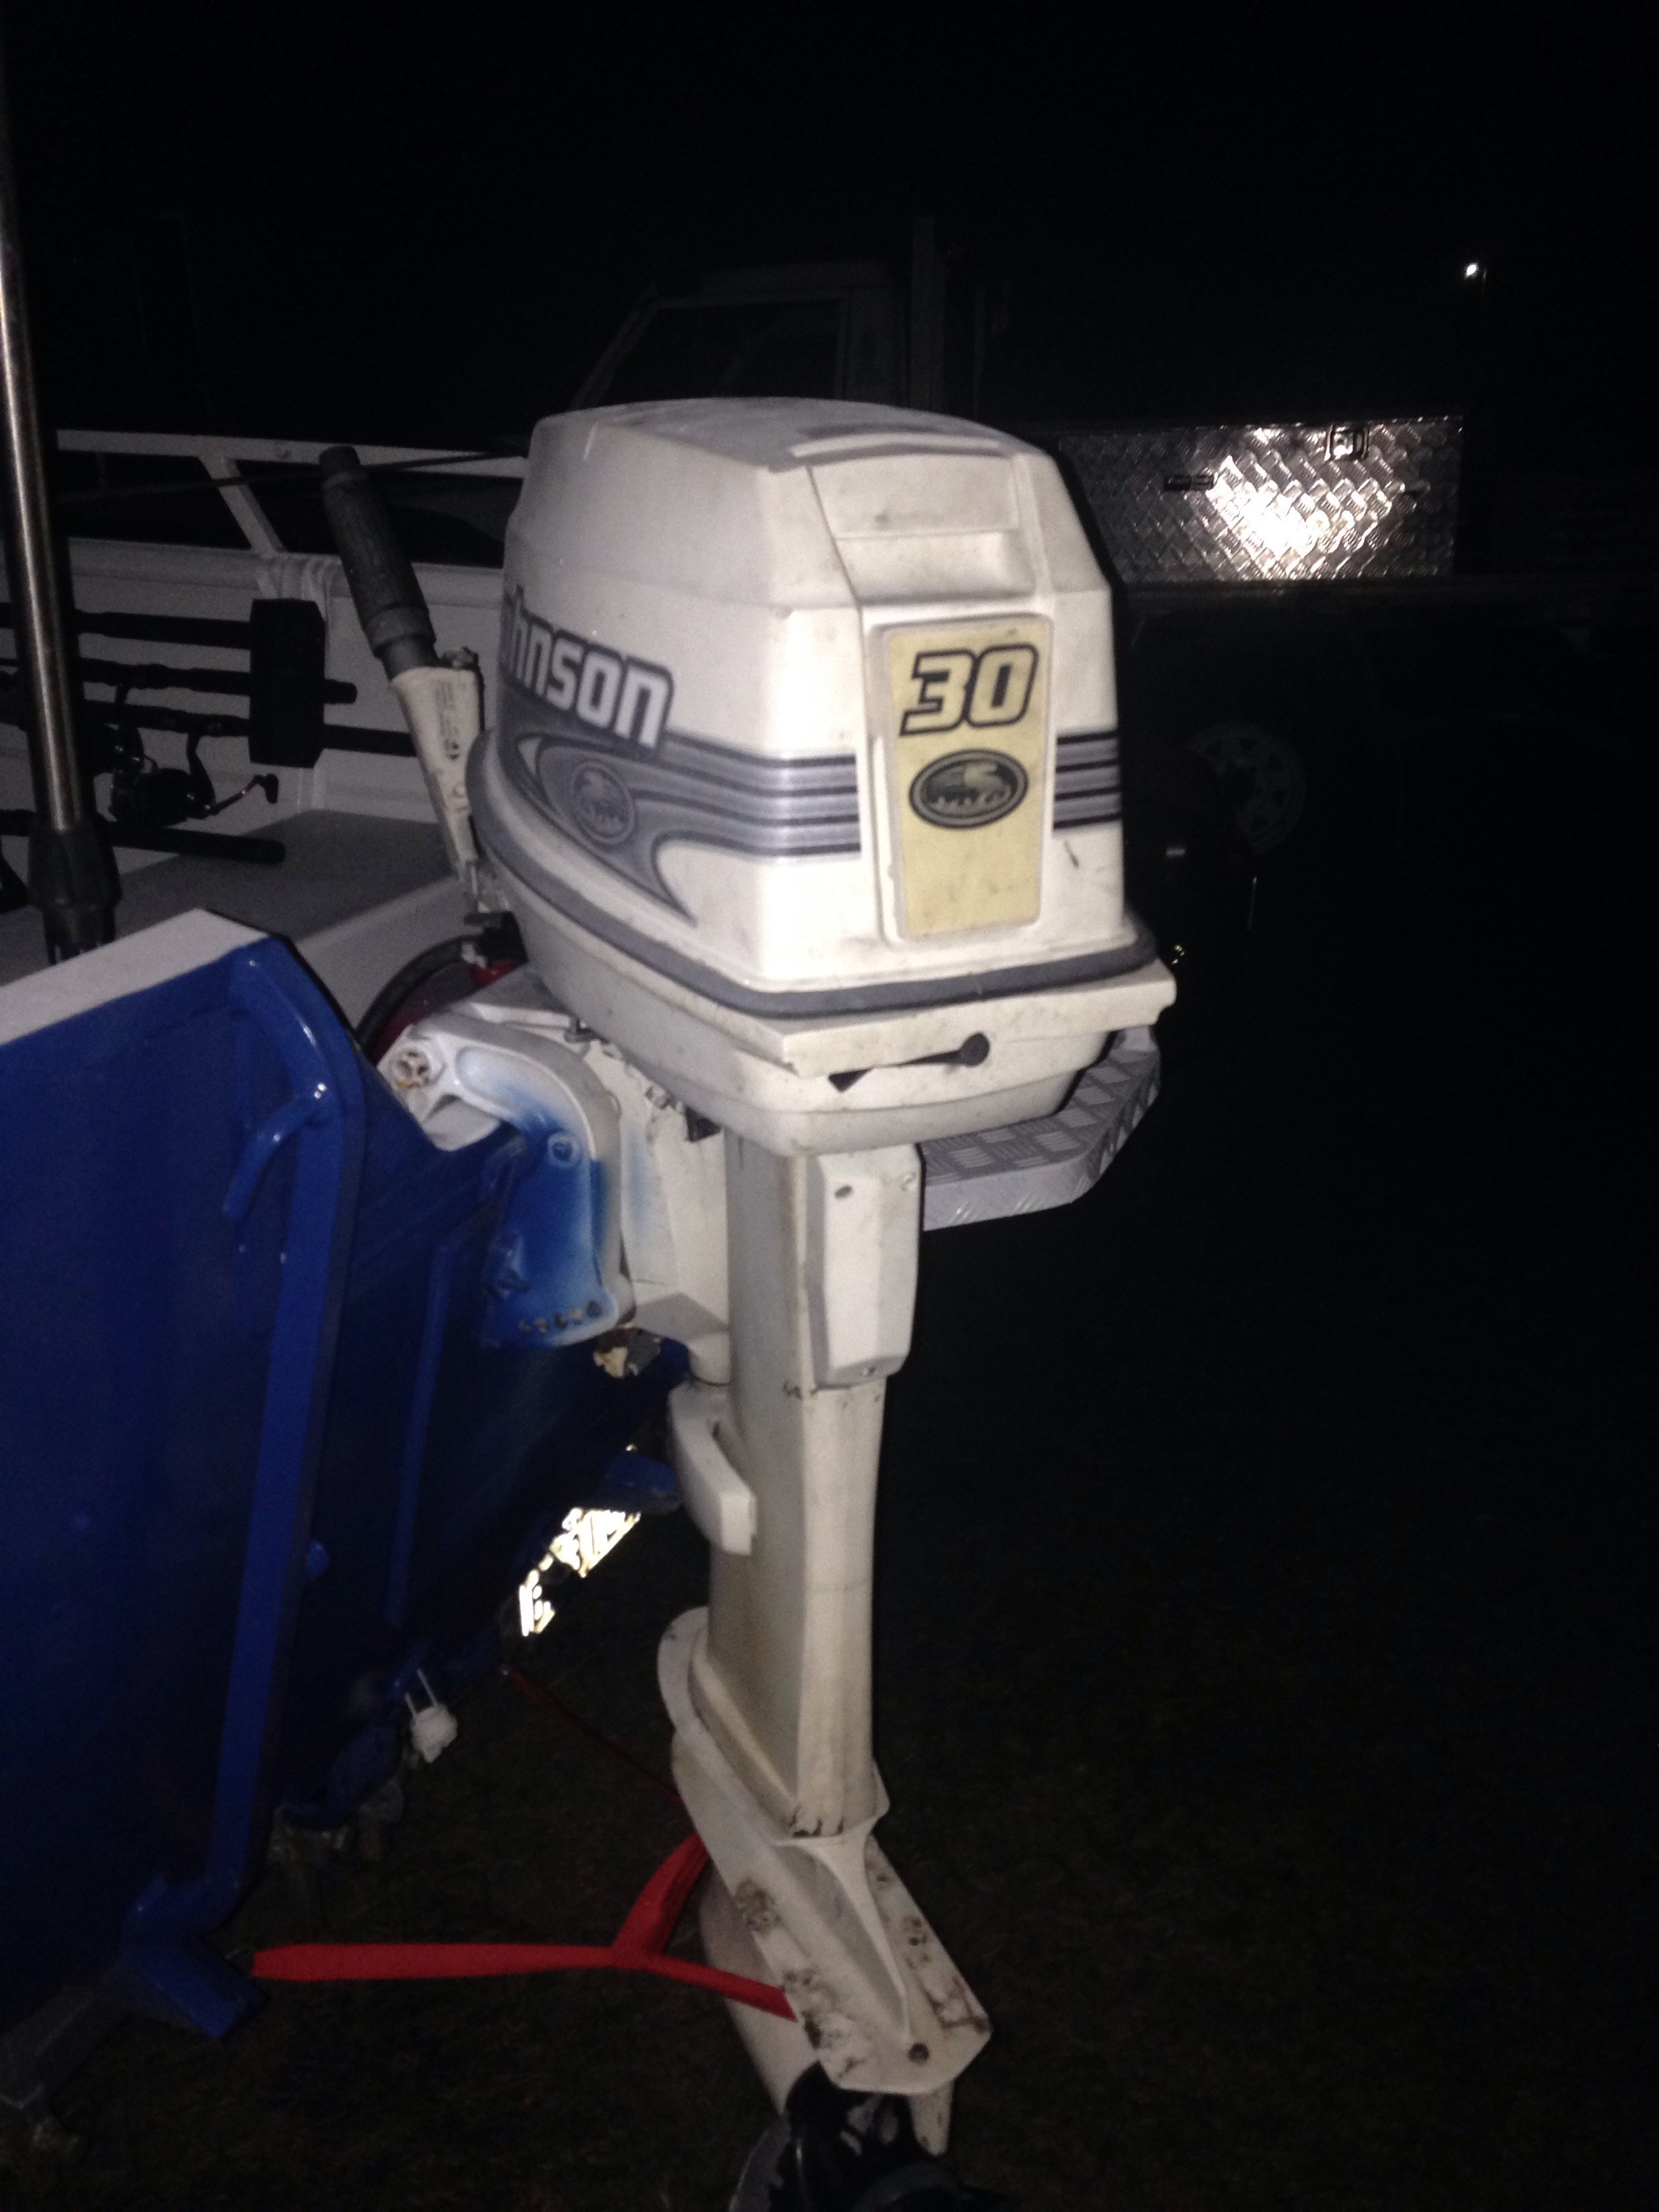 johnson outboard dealers brisbane 2016 dodge ram 1500 trailer wiring diagram 2005 boat sales qld north 2635358